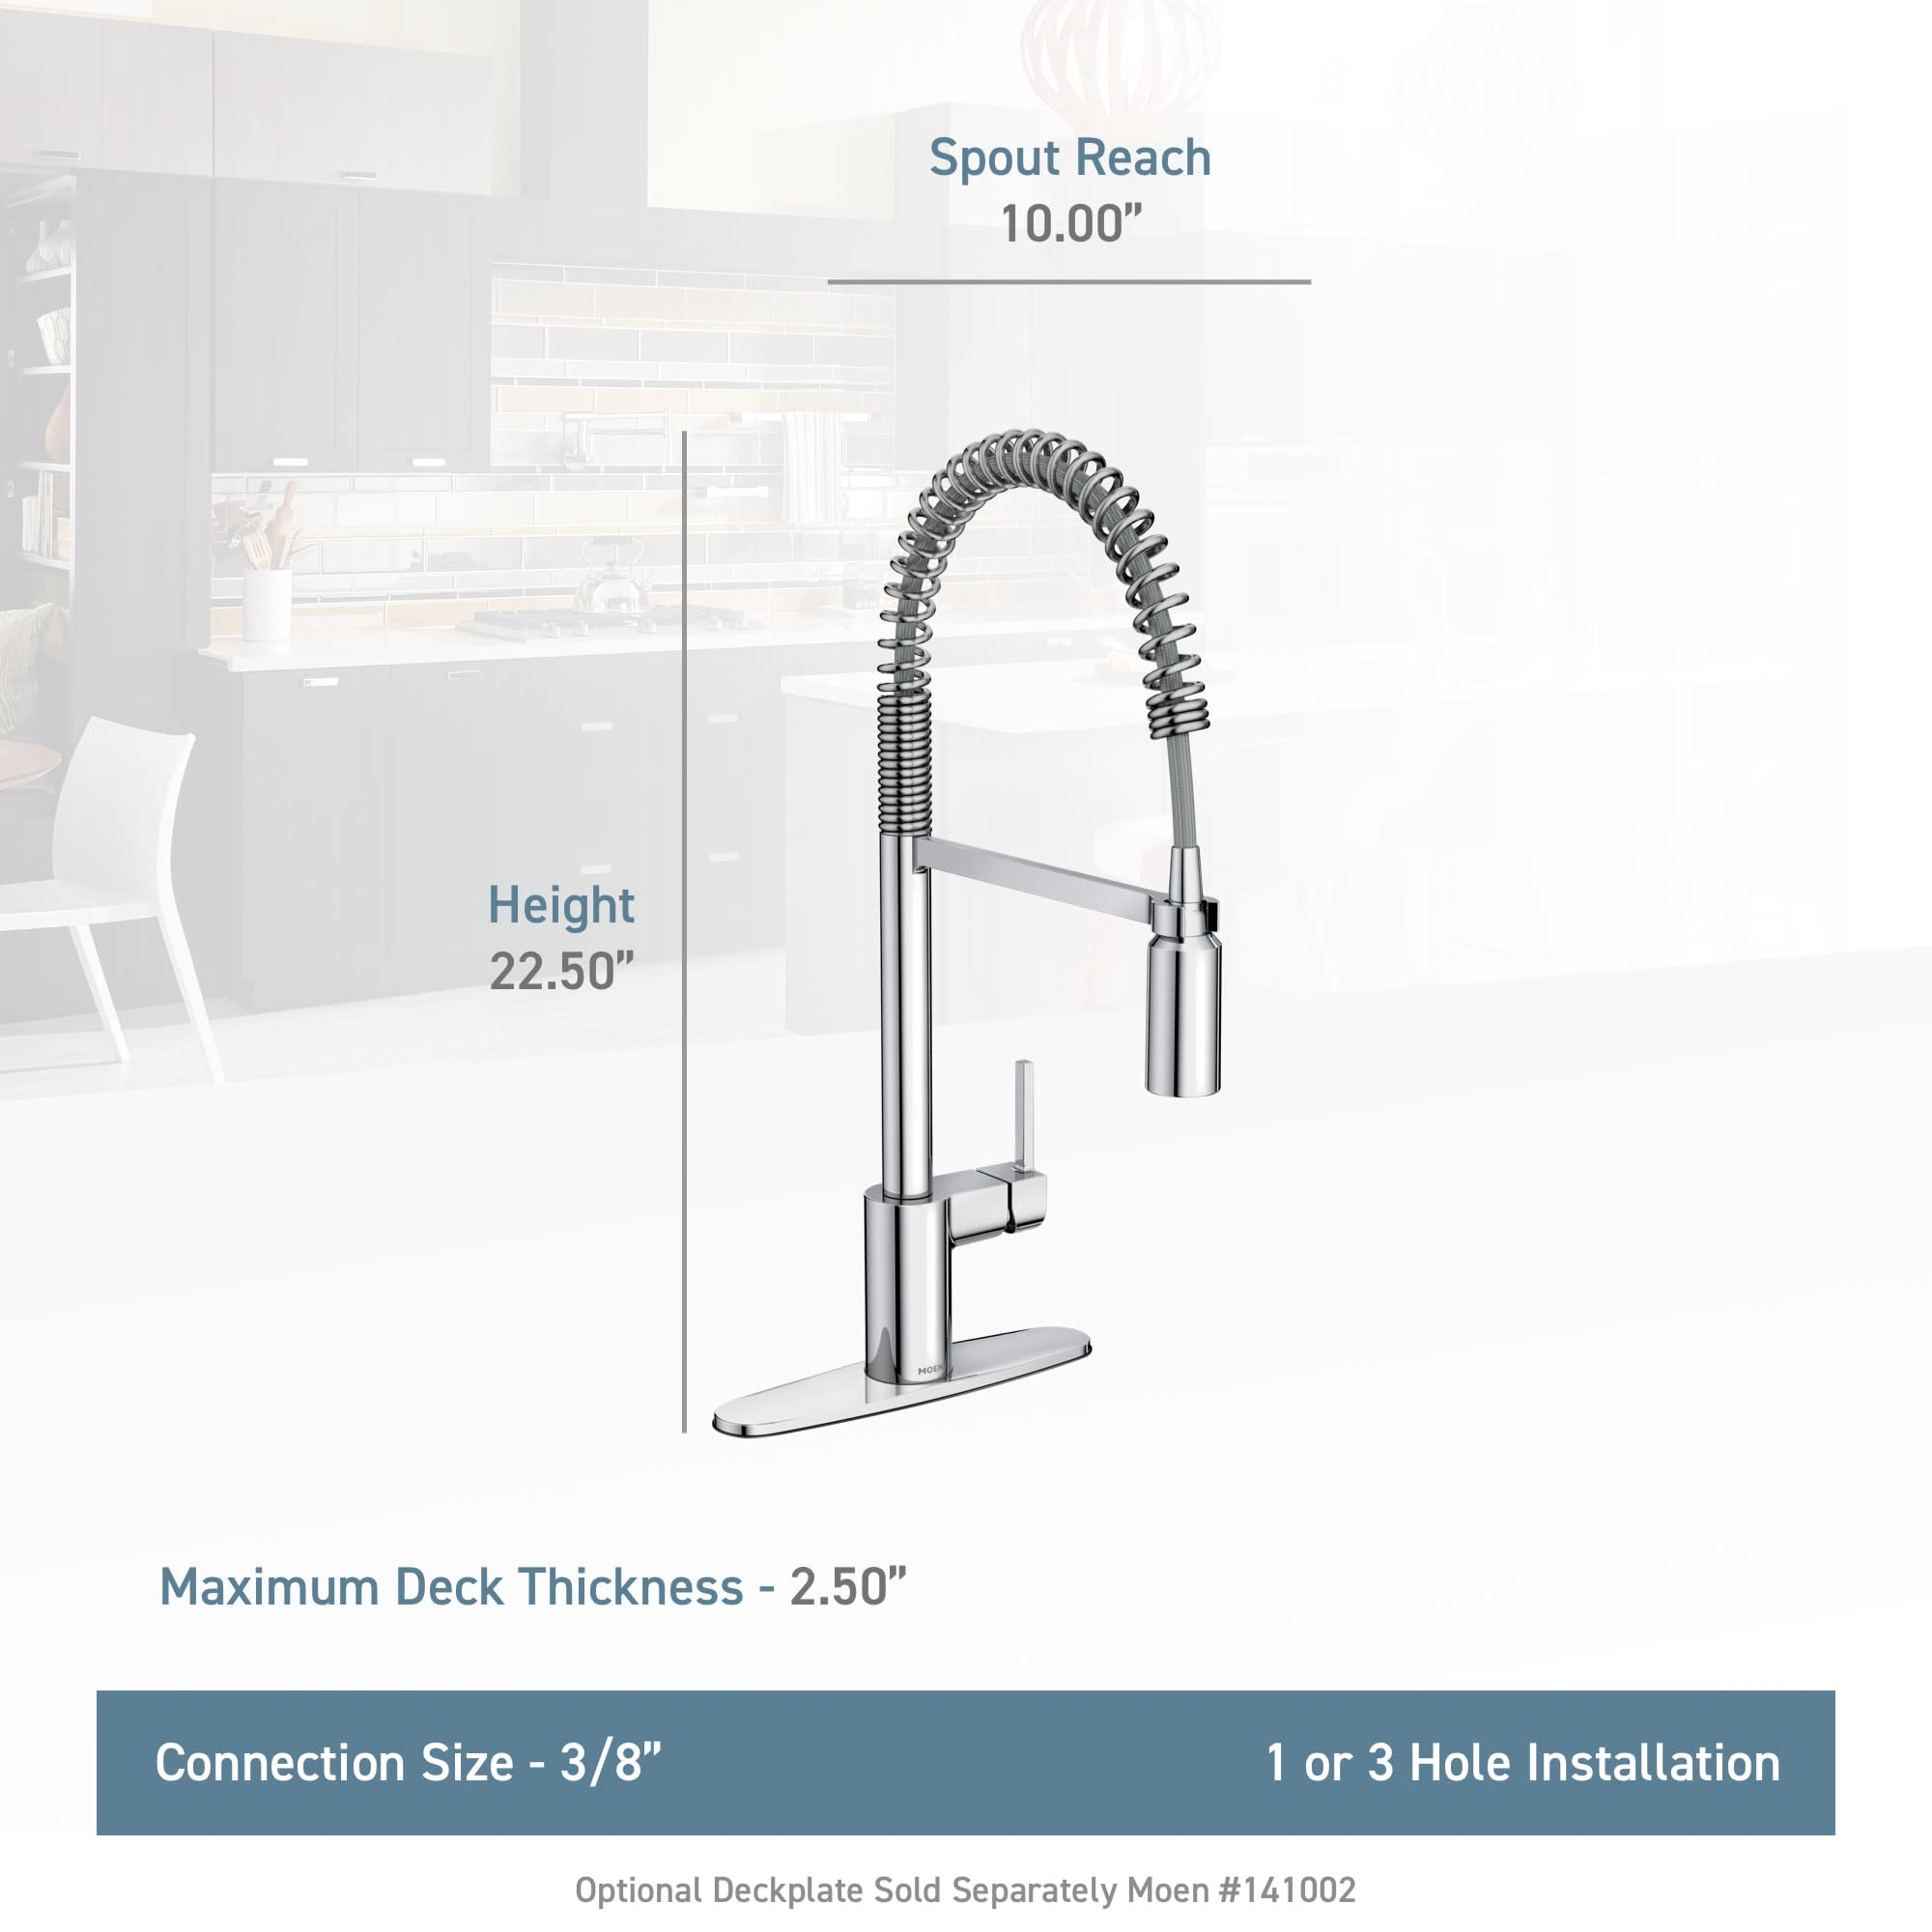 Details about Moen 5923 Align 1.5 GPM 1 Hole Pull Down Kitchen Faucet -  Spot Resist Stainless